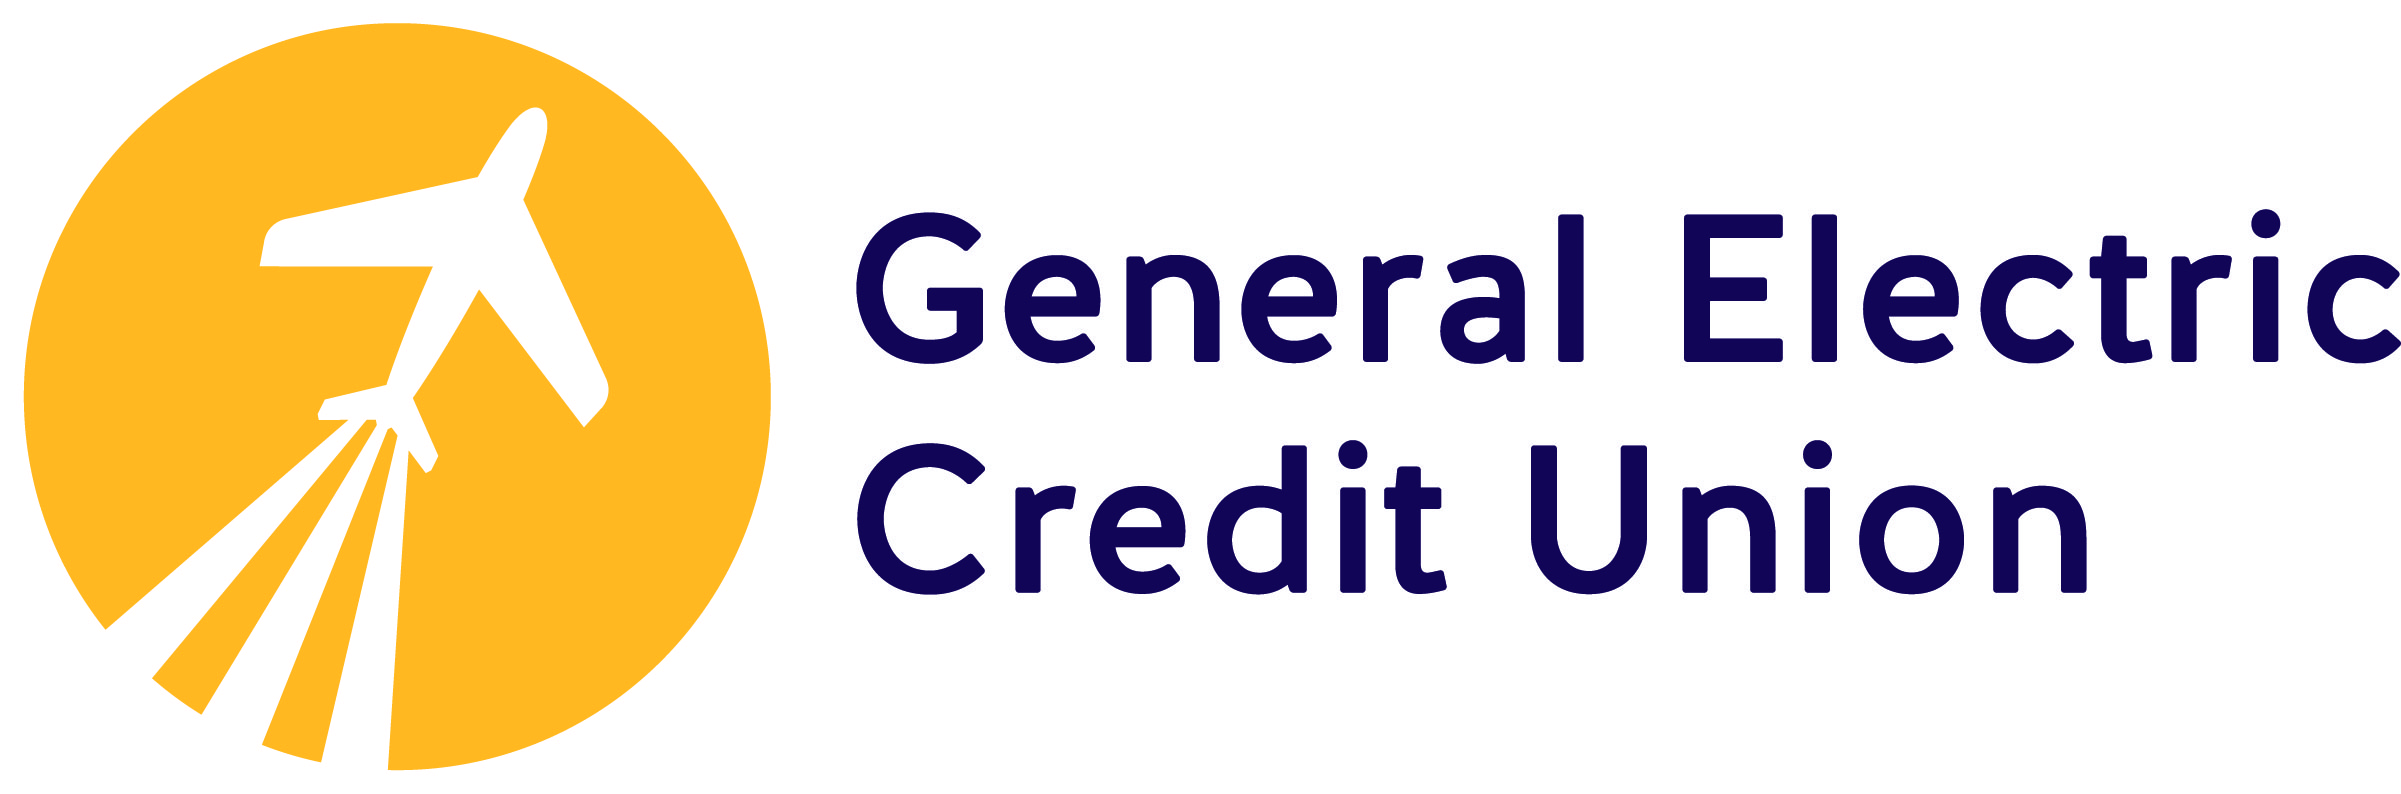 1.6. GE Credit Union (Gold)